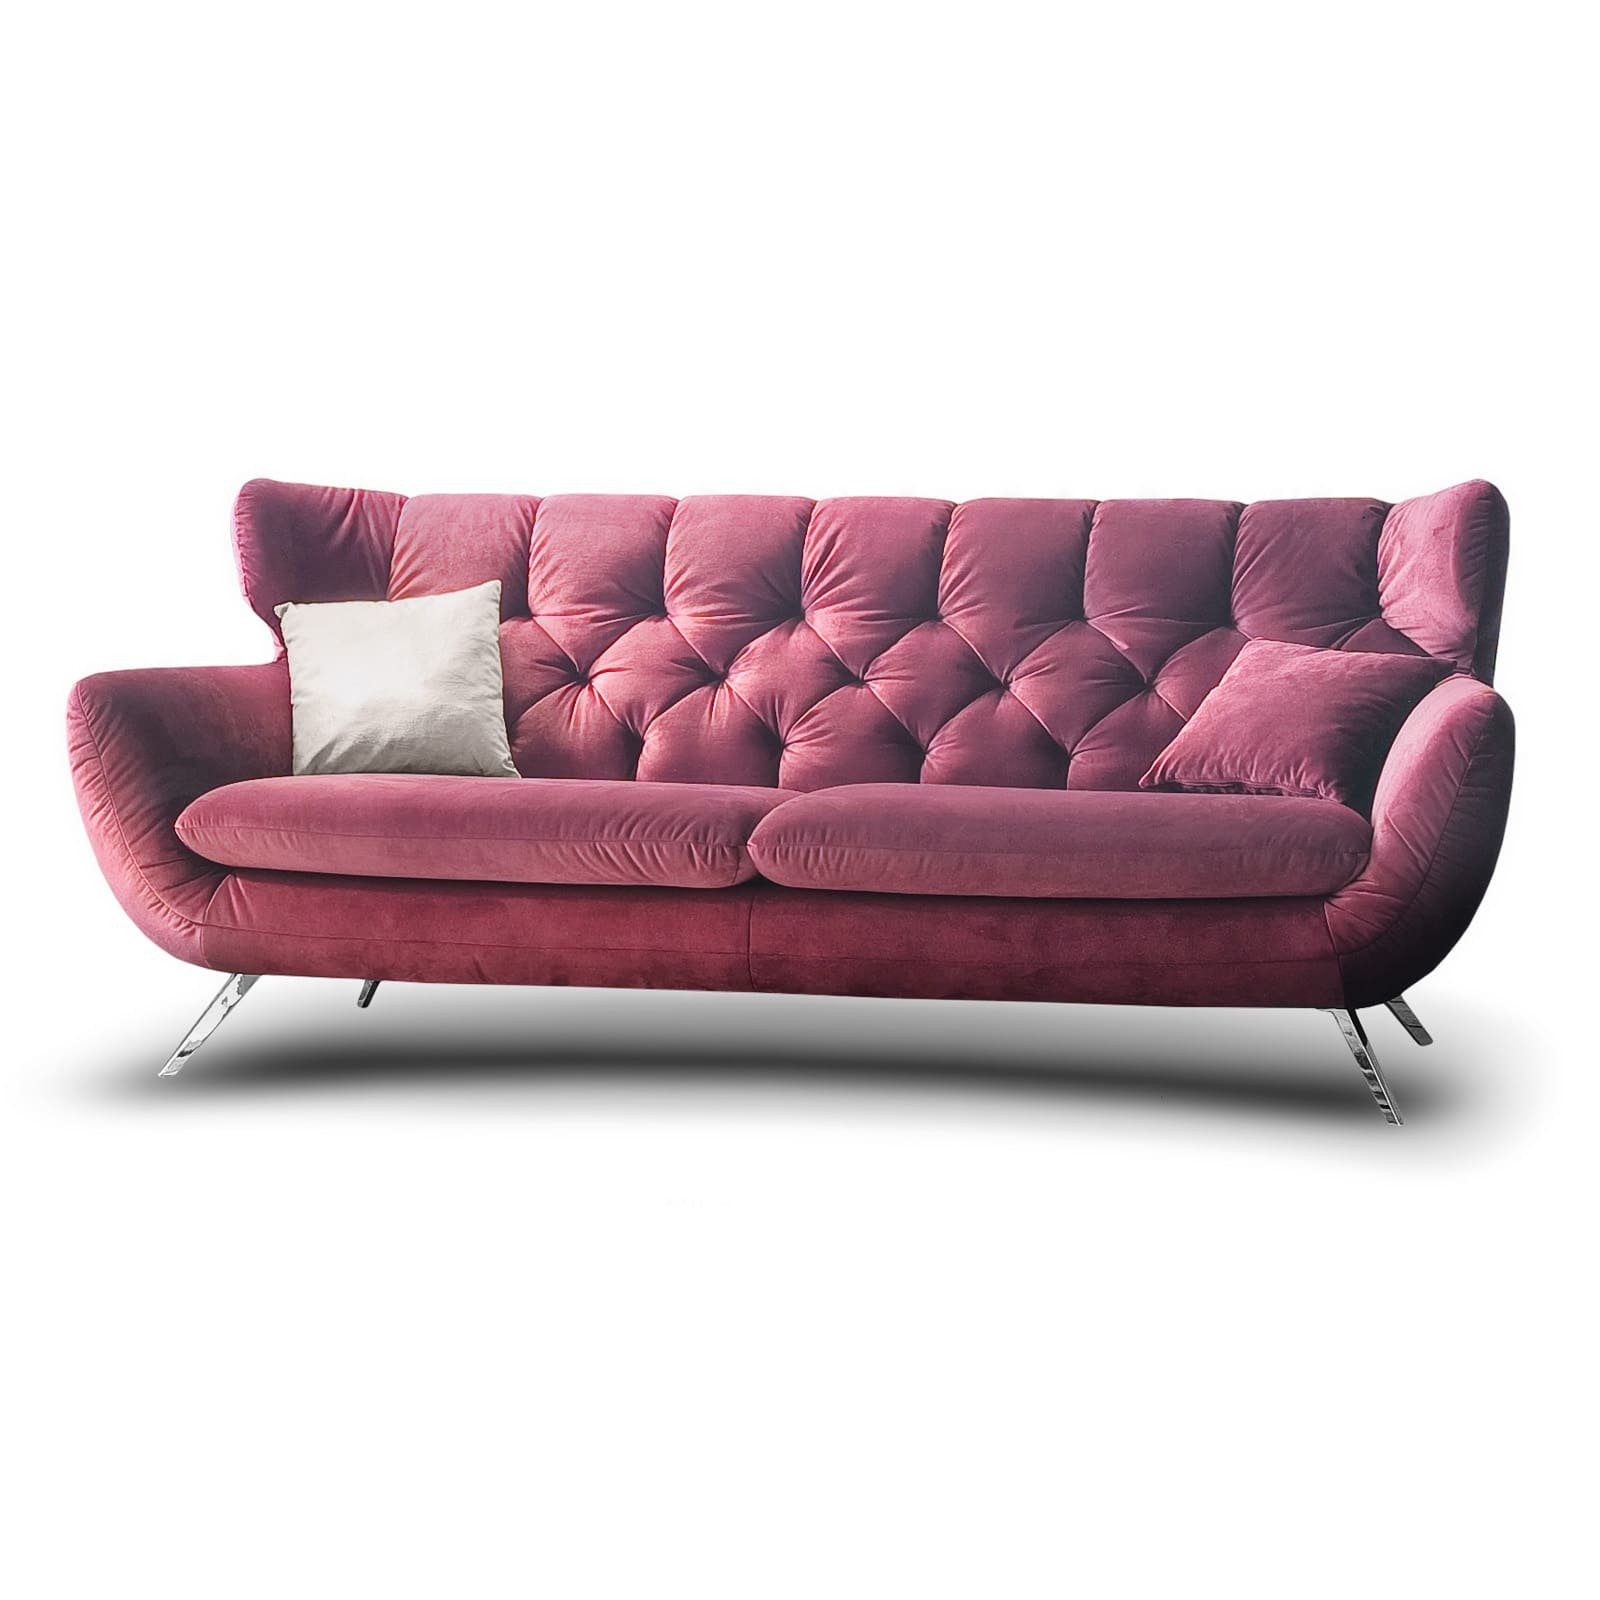 Designer Chesterfield Candy Sixty Sofa 3c Polstersofa Couch Mit